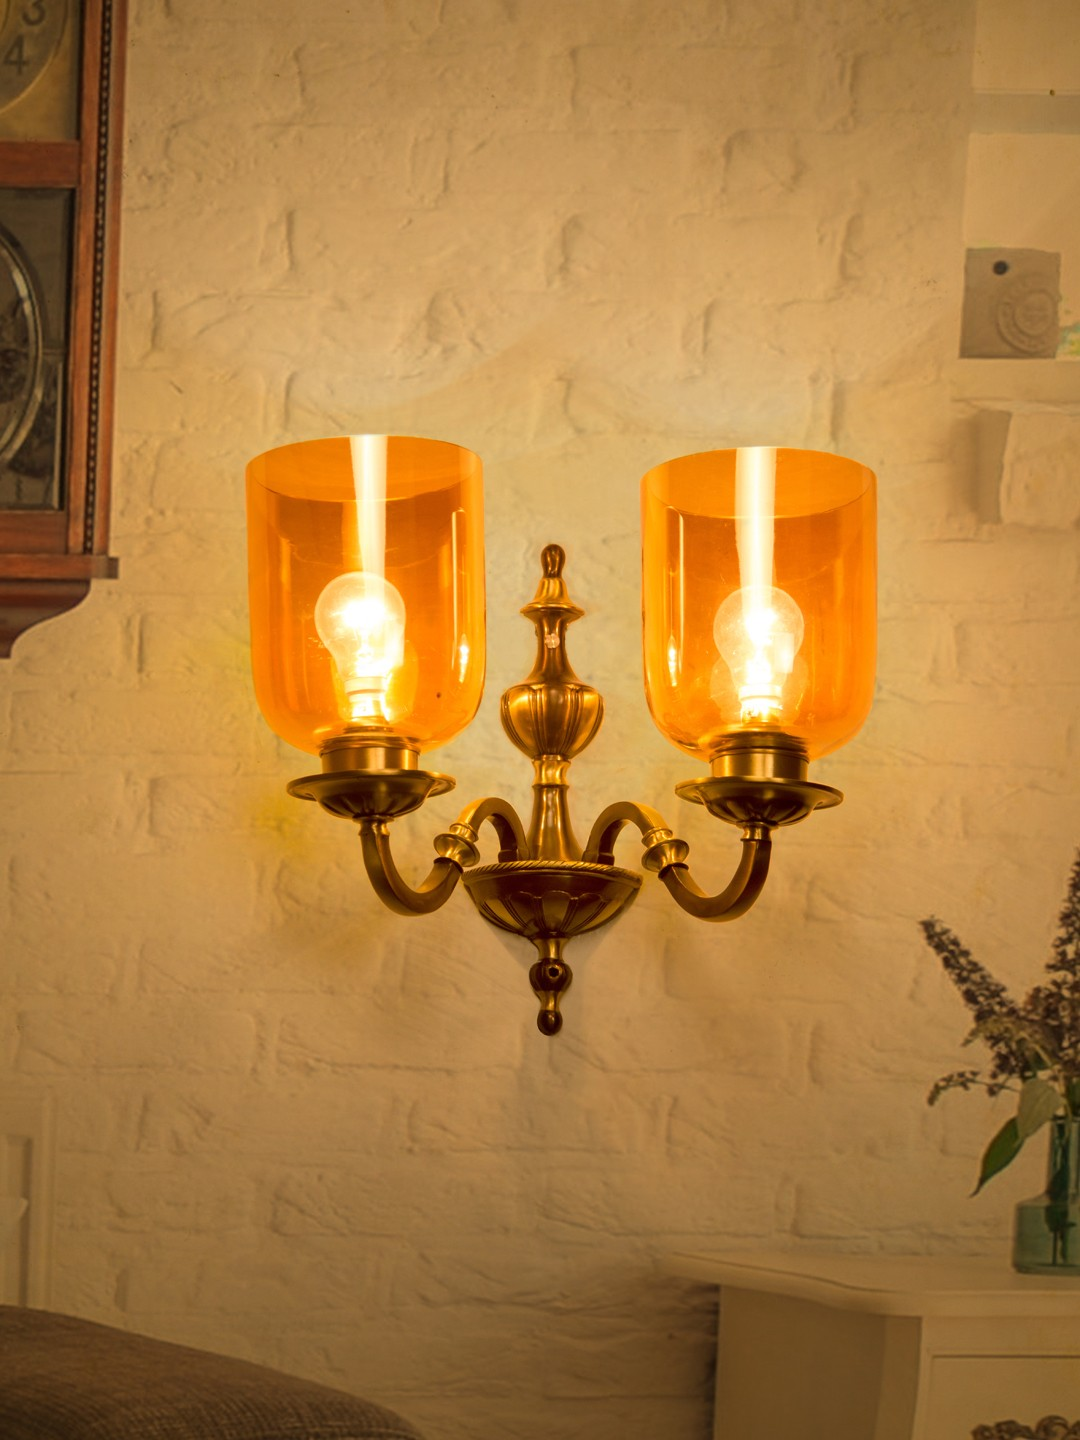 Fos Lighting Golden Luster Hurricane Classic Double Wall Sconce